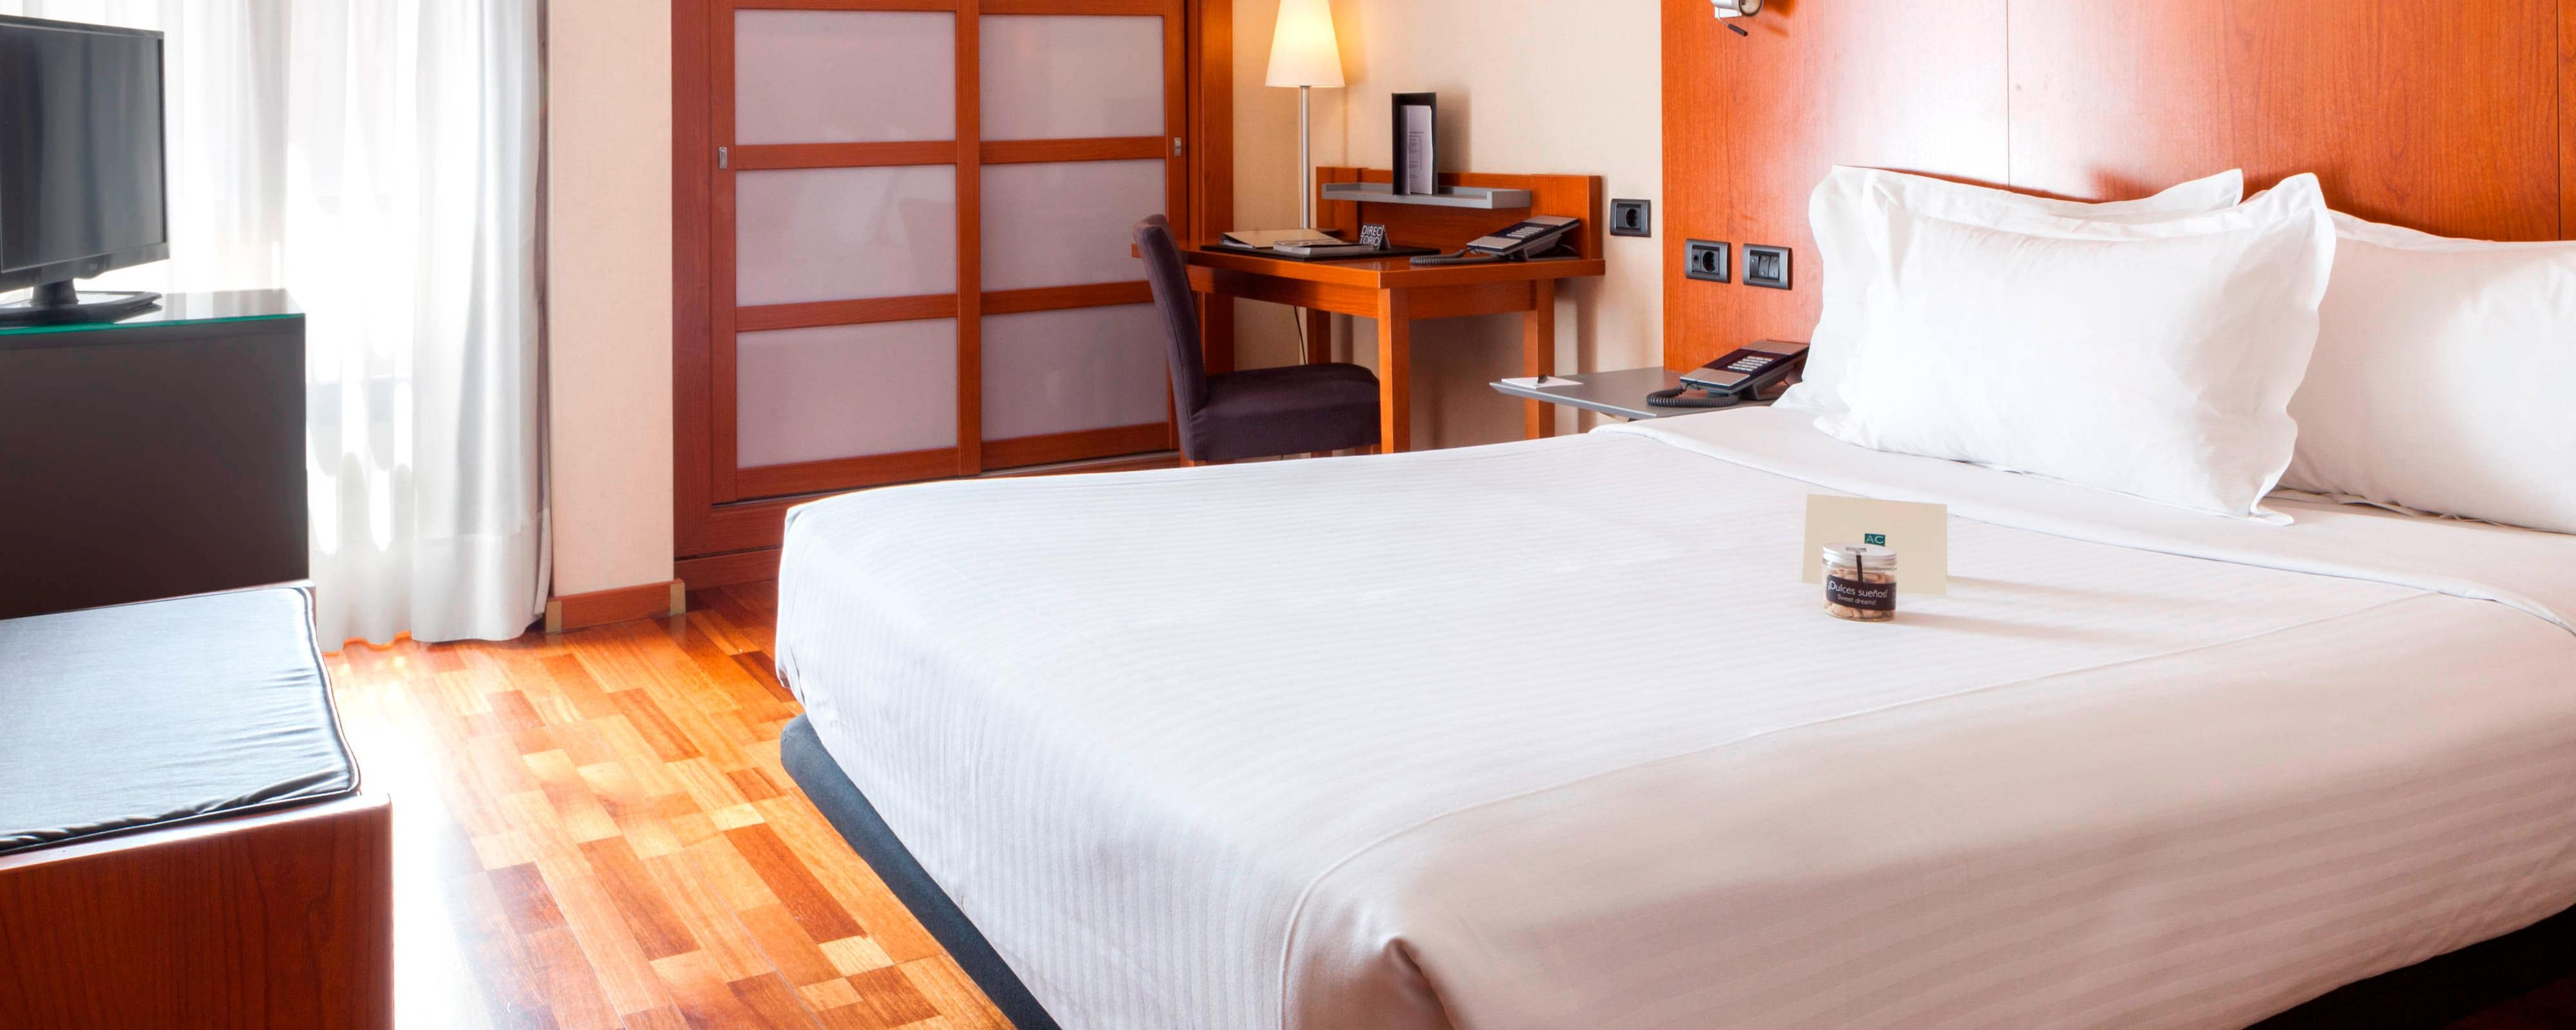 Hotel AC Palencia- Upgraded Rooms